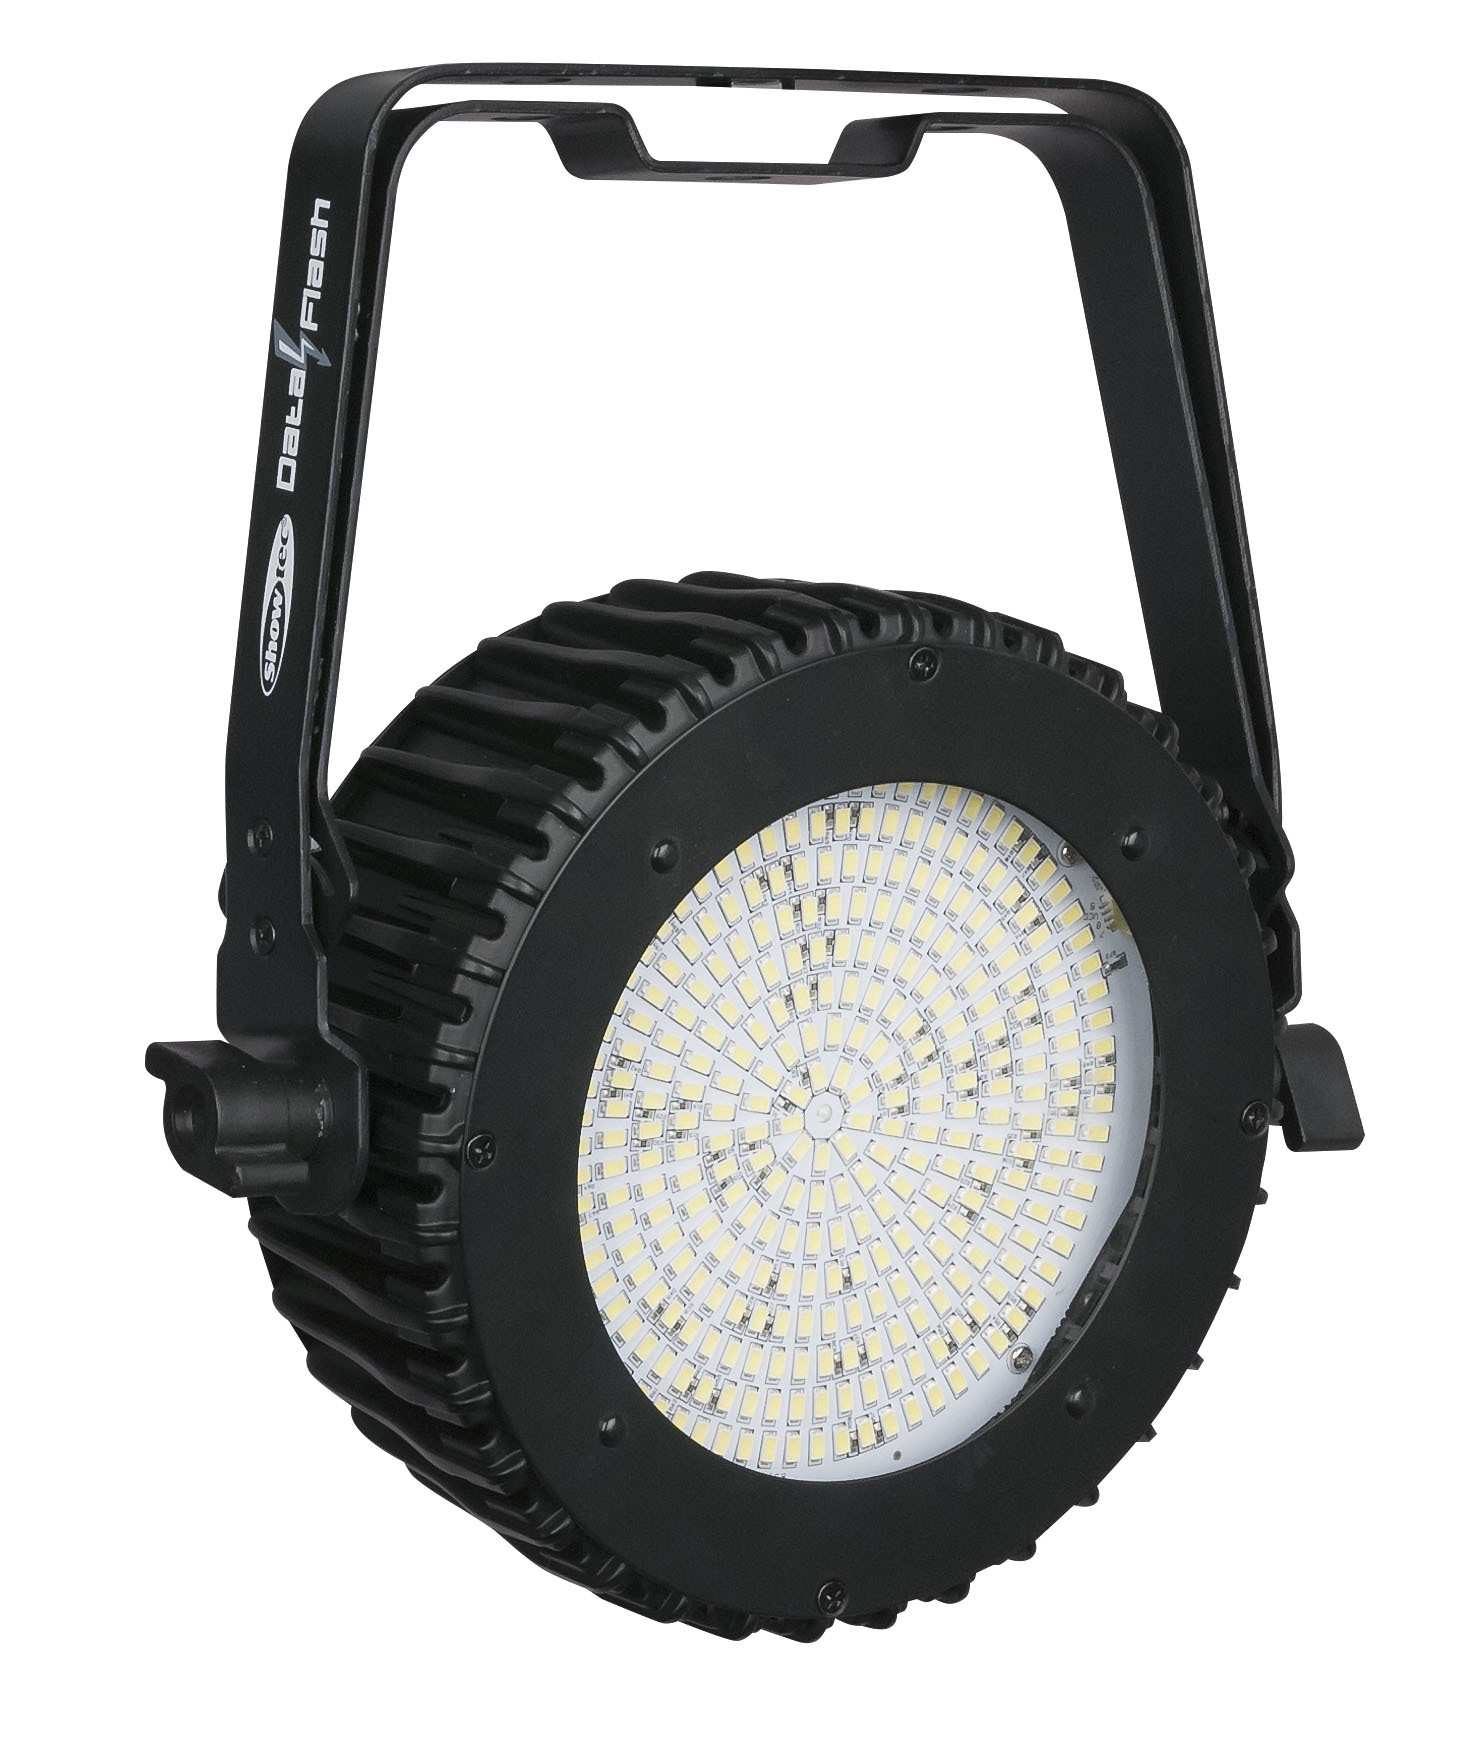 Showtec Data Flash Strobe